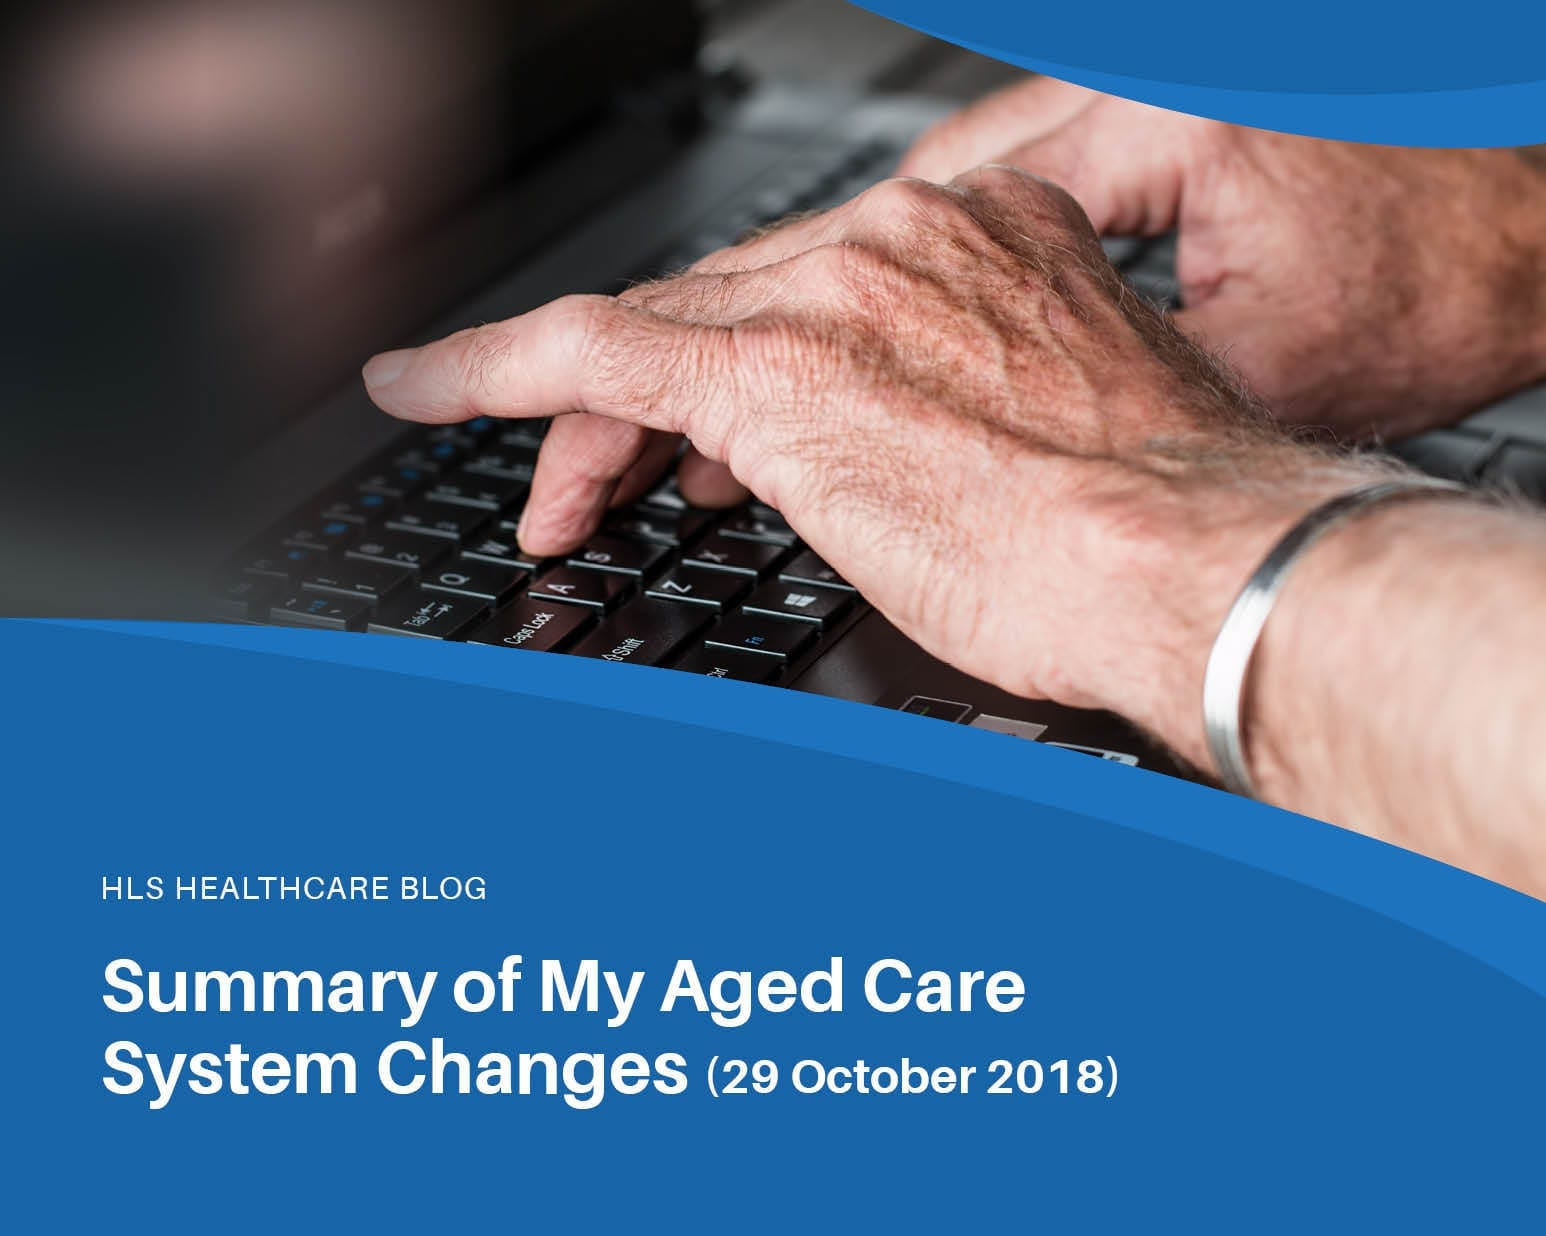 Summary of My Aged Care System Changes 29 OCTOBER 2018